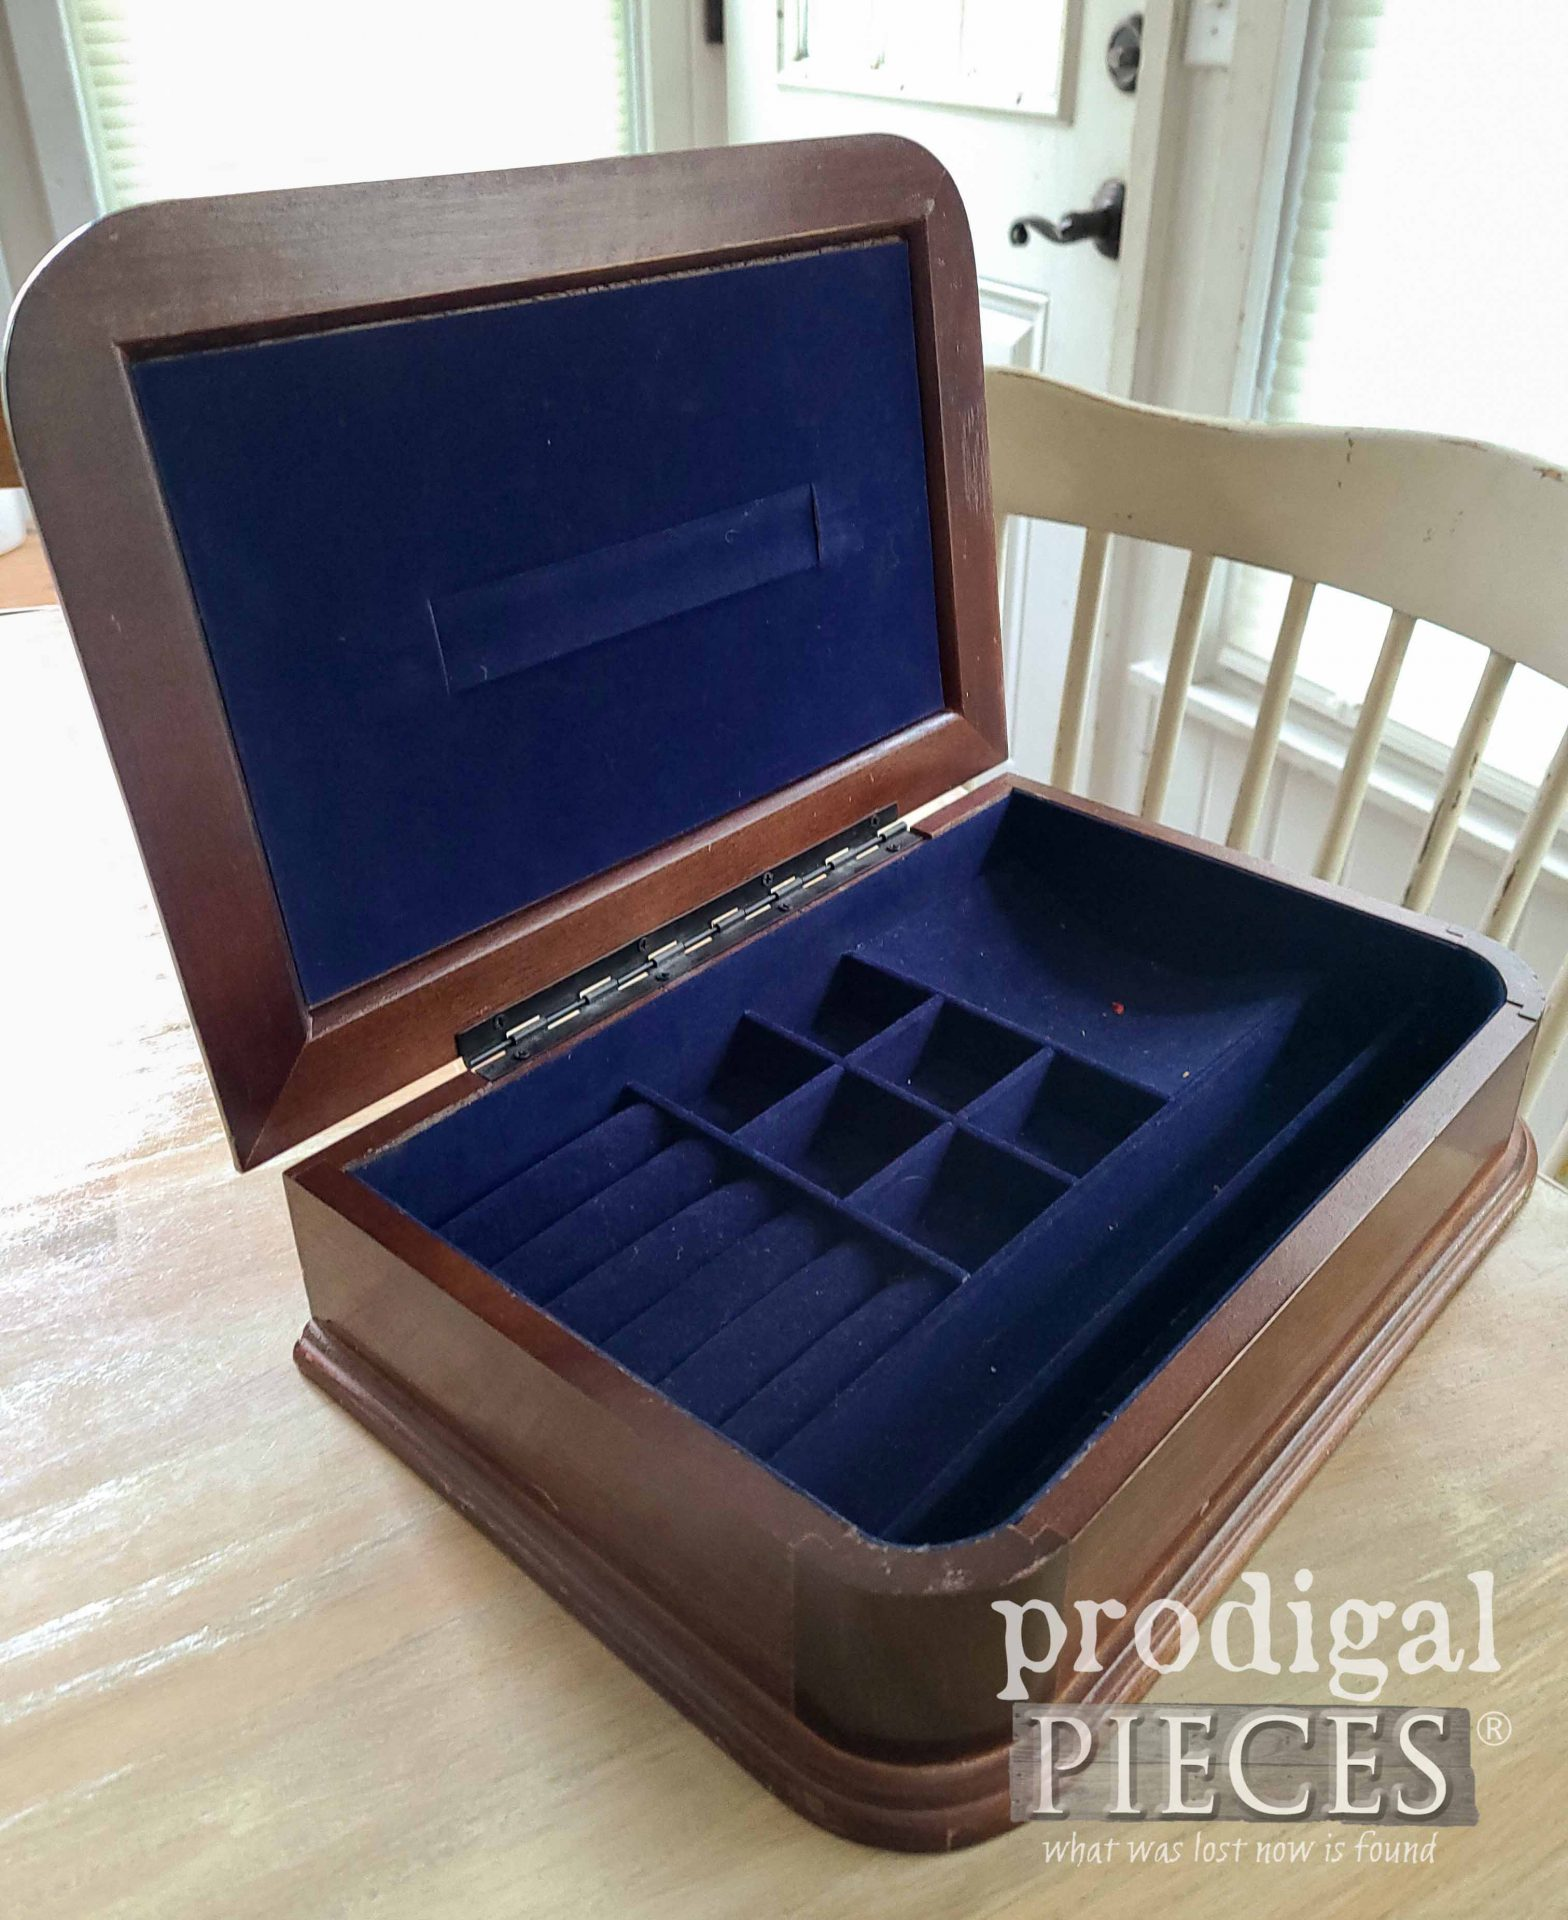 Blue Interior of Vintage Jewelry Box | prodigalpieces.com #prodigalpiecess